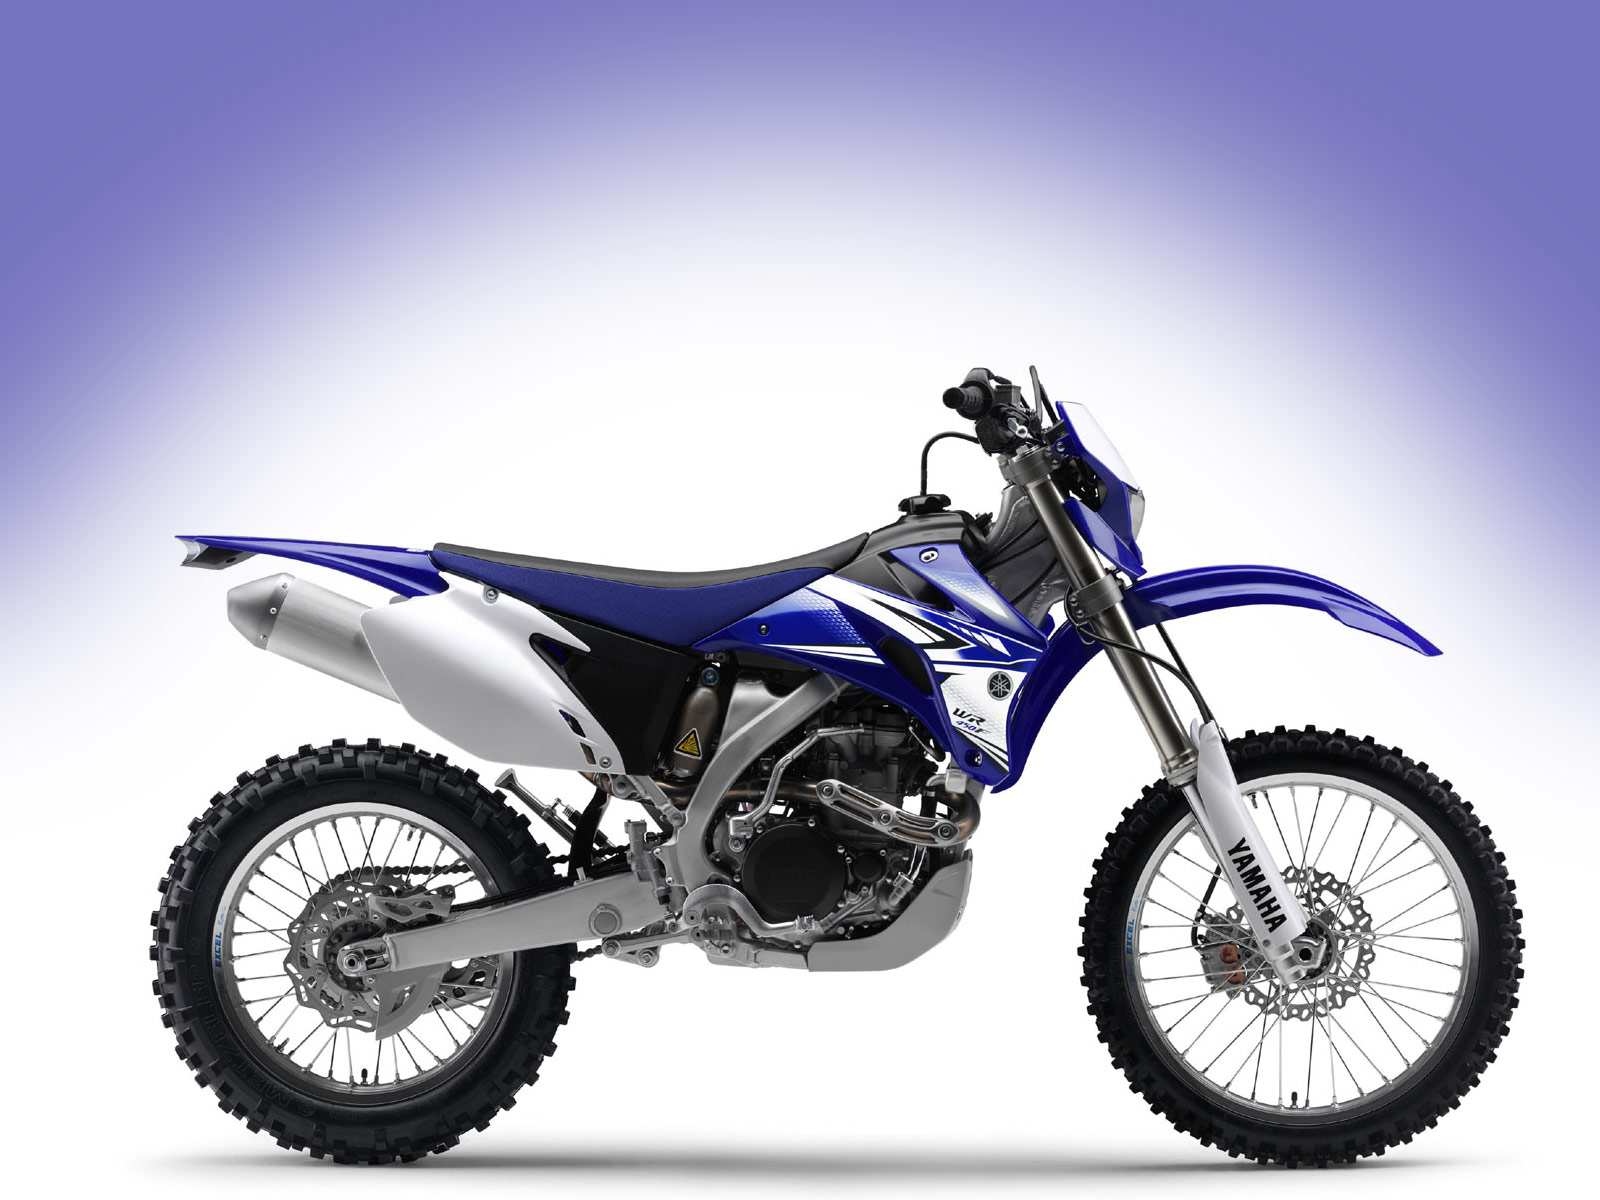 Motorcycles Sport Yamaha Wr450f 2011 Motorcycle